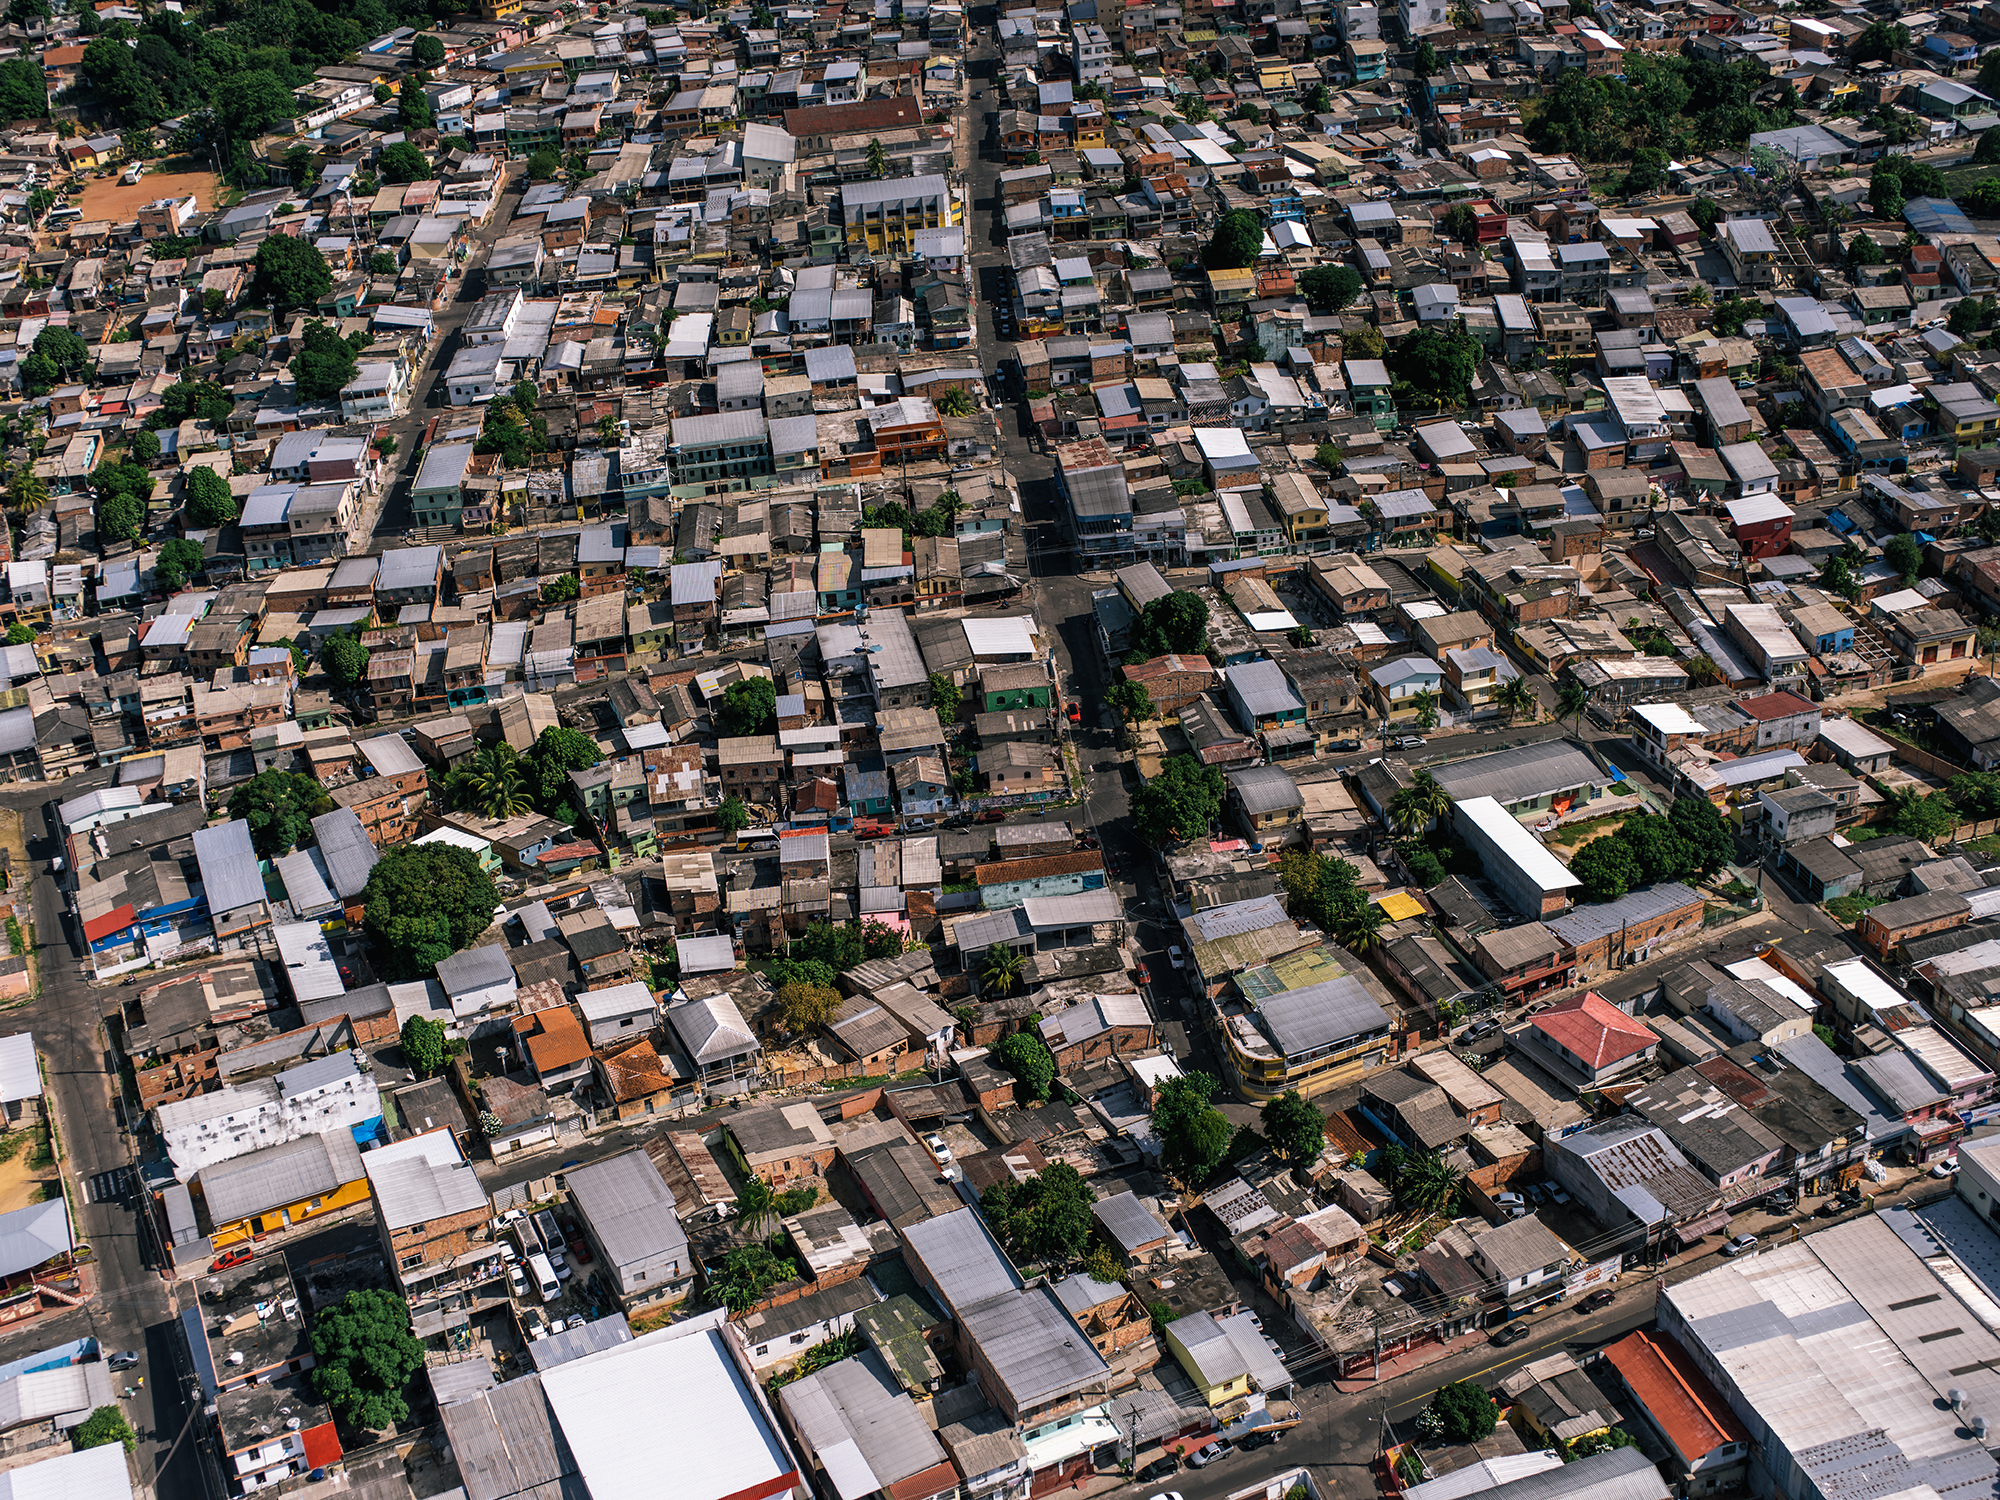 The tightly packed favelas outside of Manaus.